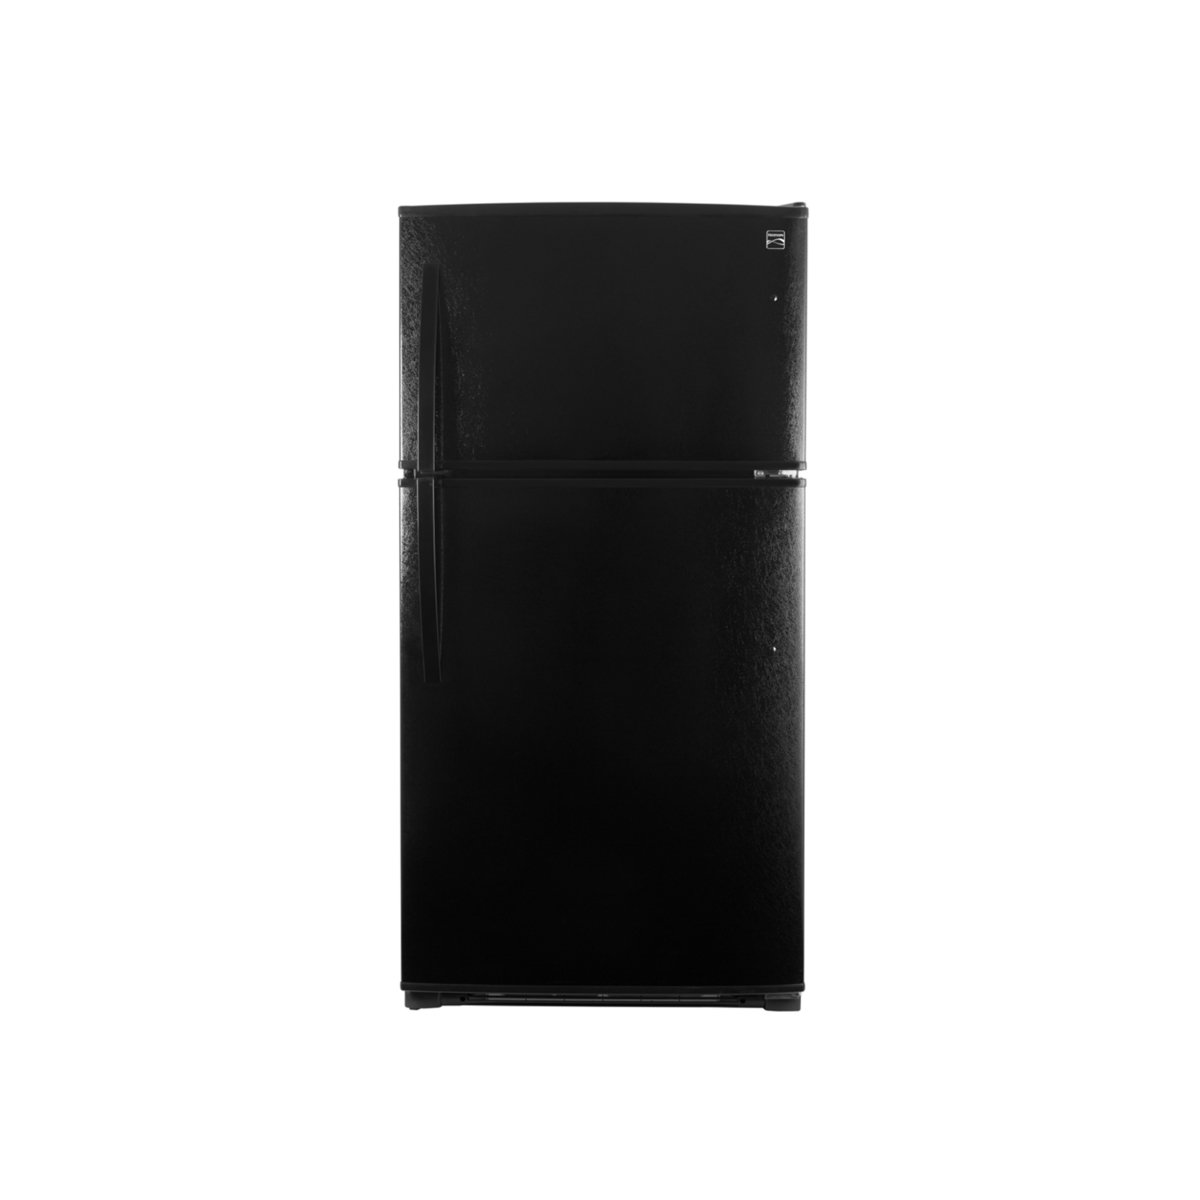 Kenmore 61219 20.8 cu.ft. Top-Freezer Refrigerator with LED Lighting in Black, includes delivery and hookup (Available in select cities only)